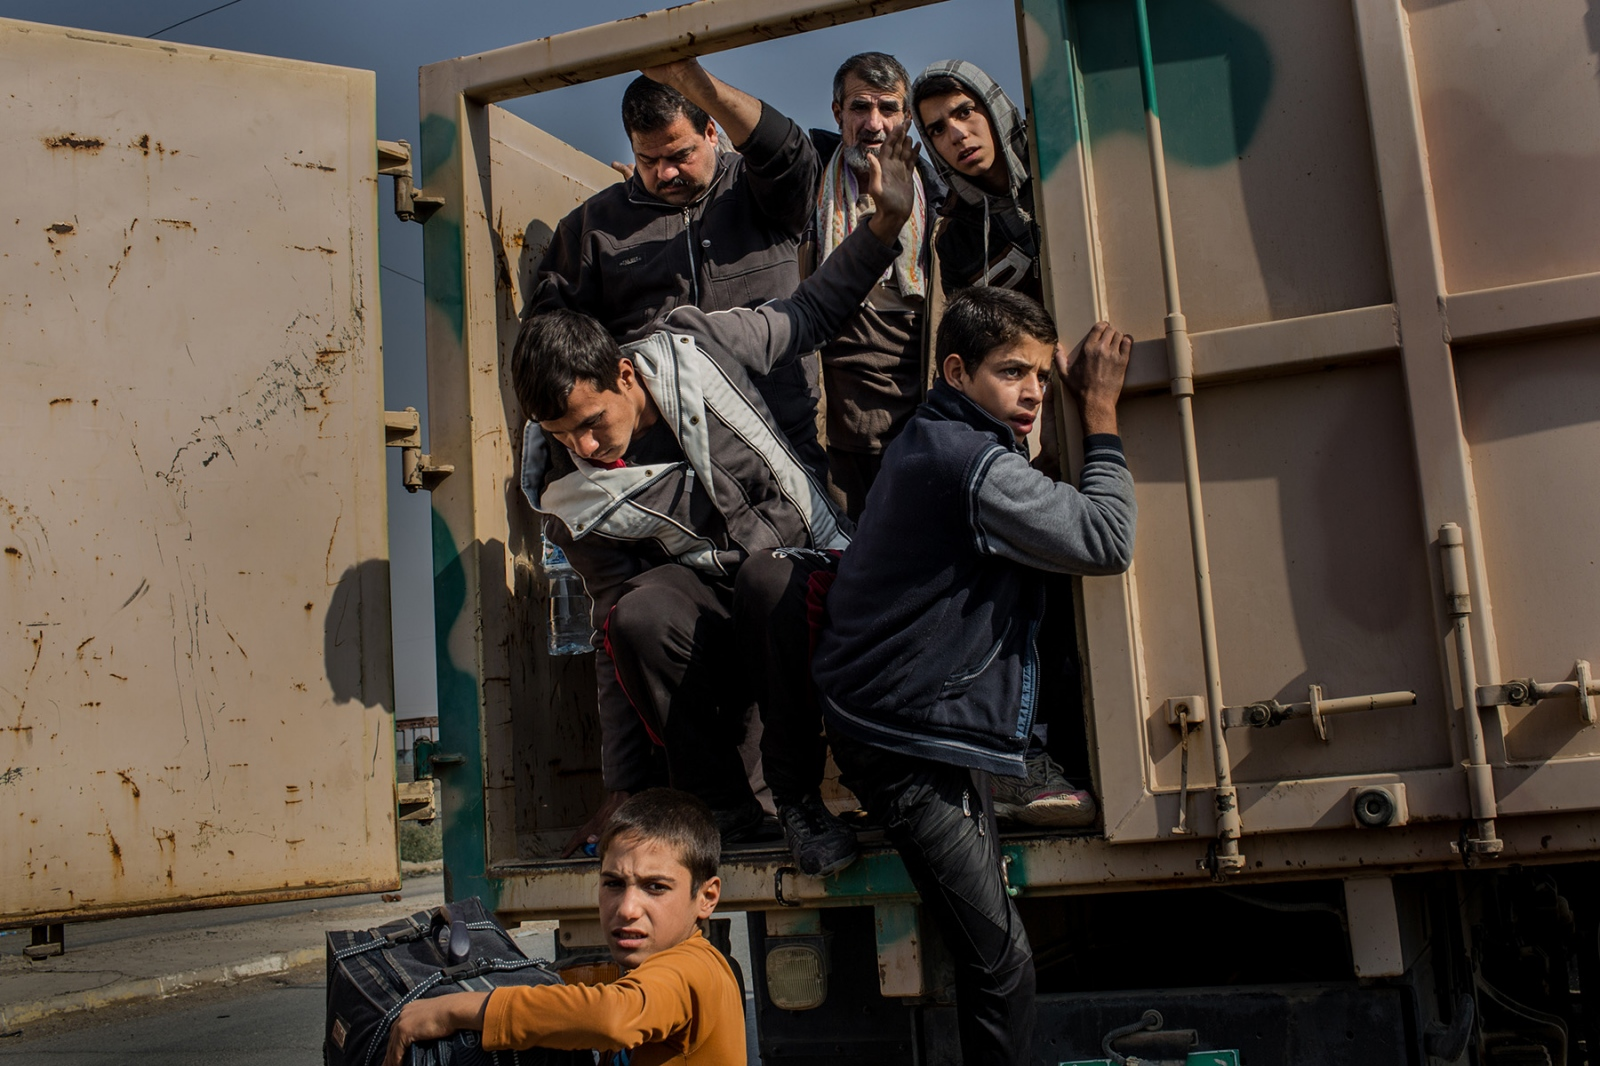 A convoy of men fleeing from Mosul are taken off a truck to be searched and checked against a wanted list of suspected ISIS fighters near the town of Gogjali, Iraq, November 2016. Iraqi security forces have been conducting rigorous checks on fleeing civilians to ensure they were not collaborating with ISIS, but their methods of interrogation have drawn criticism from rights groups such as Amnesty International, saying that torture and executions of Sunnis is in part due to revenge attacks.